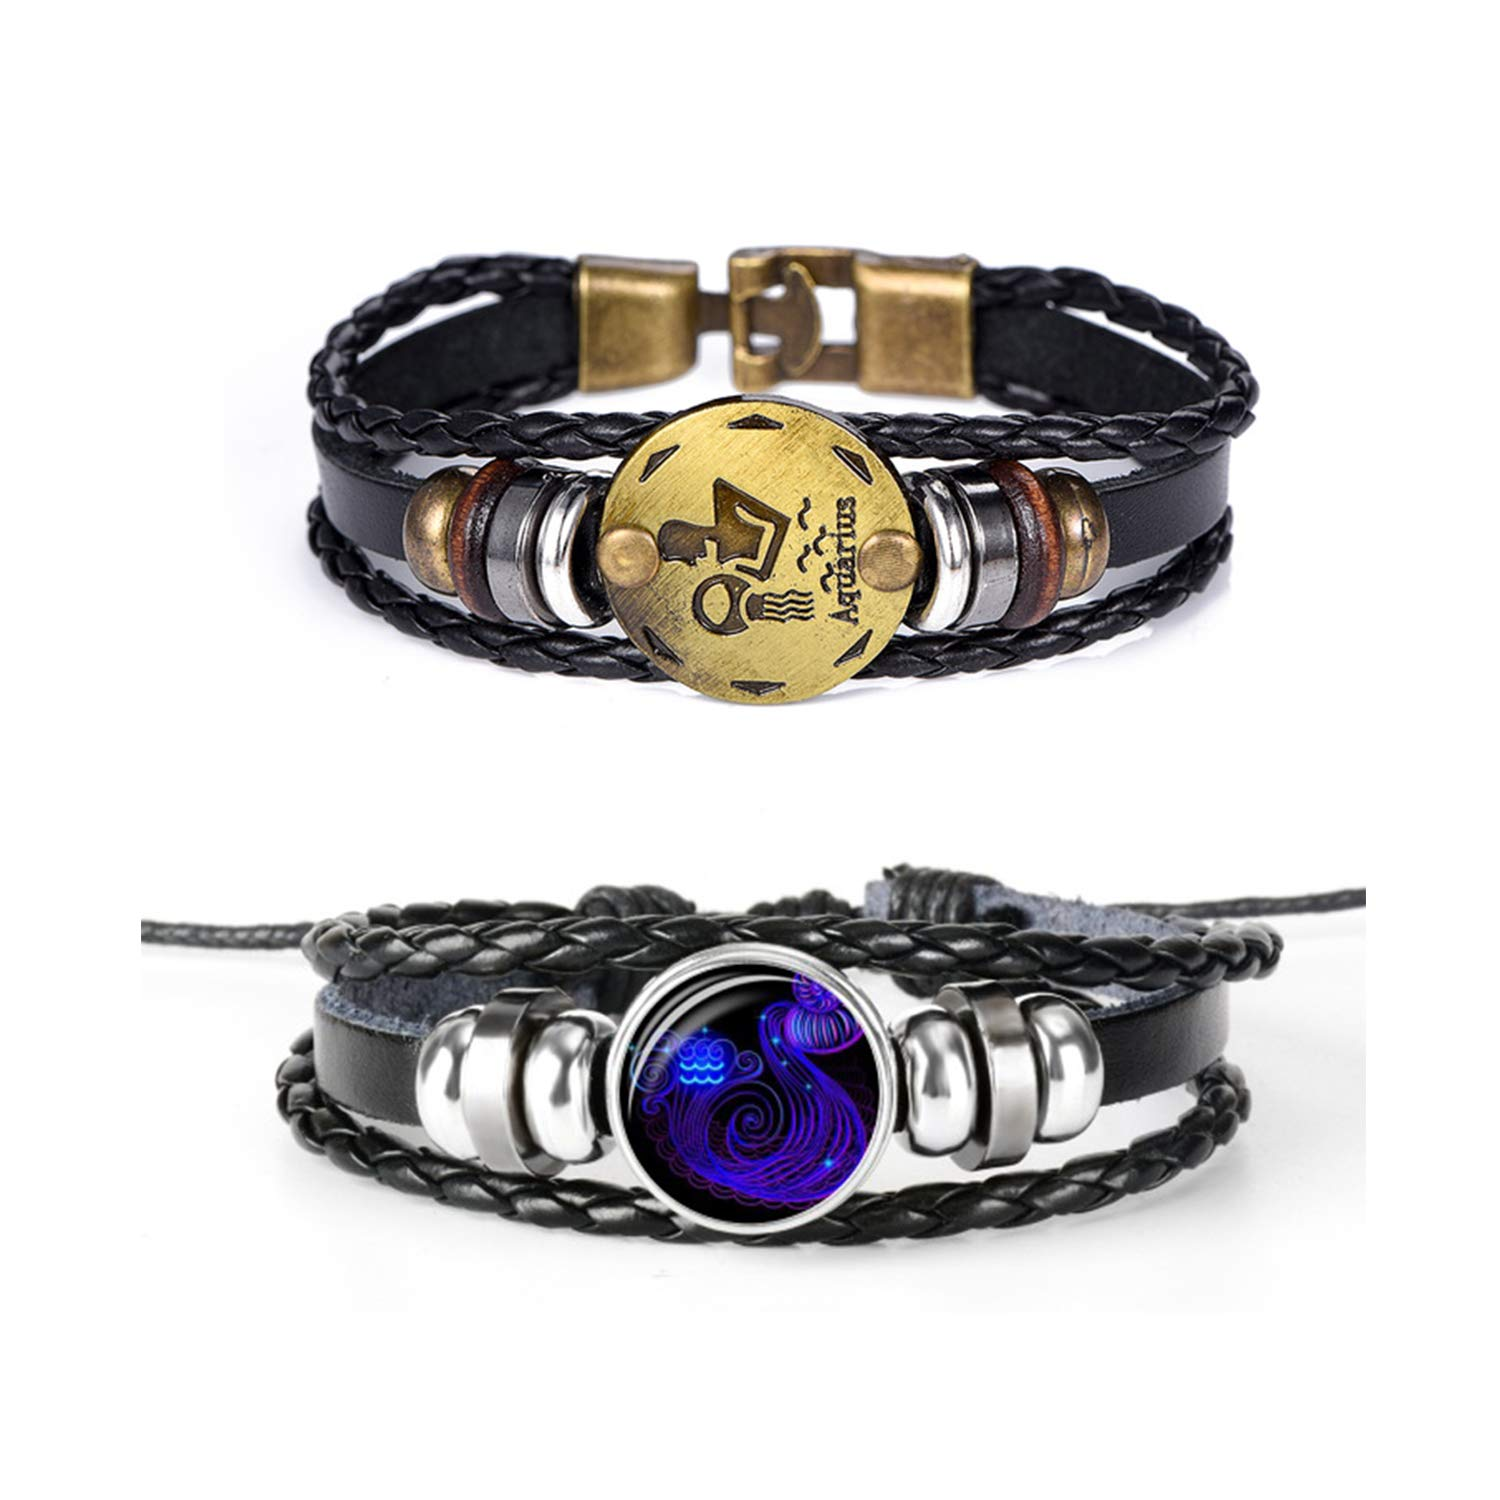 Retro 2pcs 12 Zodiac Constellation Beaded Hand Woven Leather Bracelet Braided Punk Chain Cuff